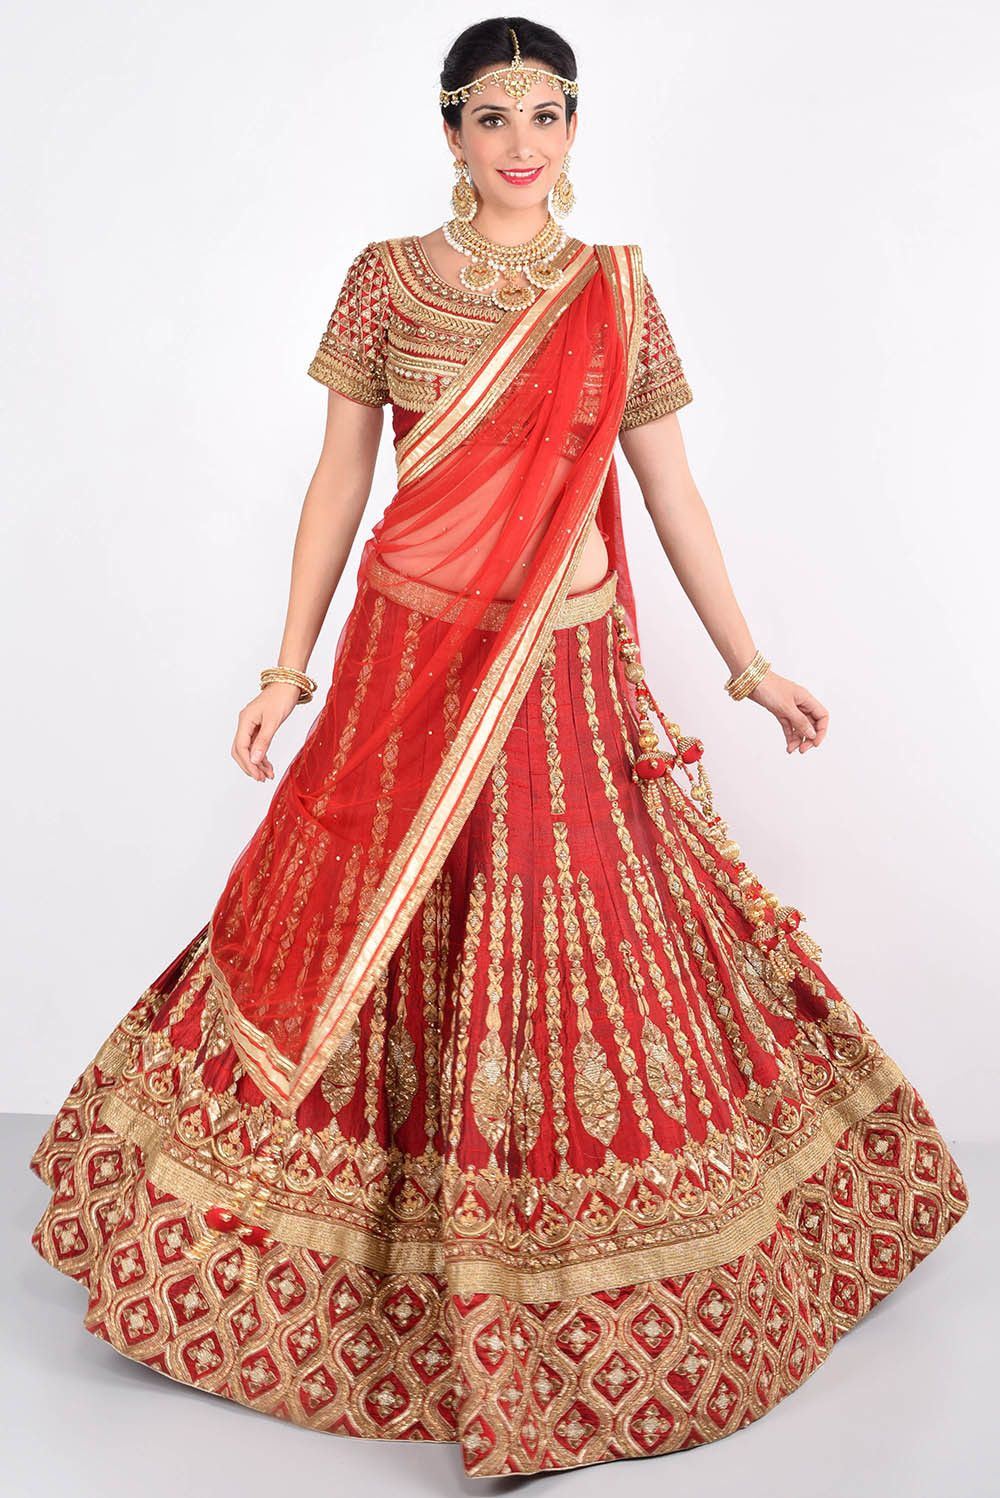 On demand wardrobe bridal lehenga indian outfits and indian wear